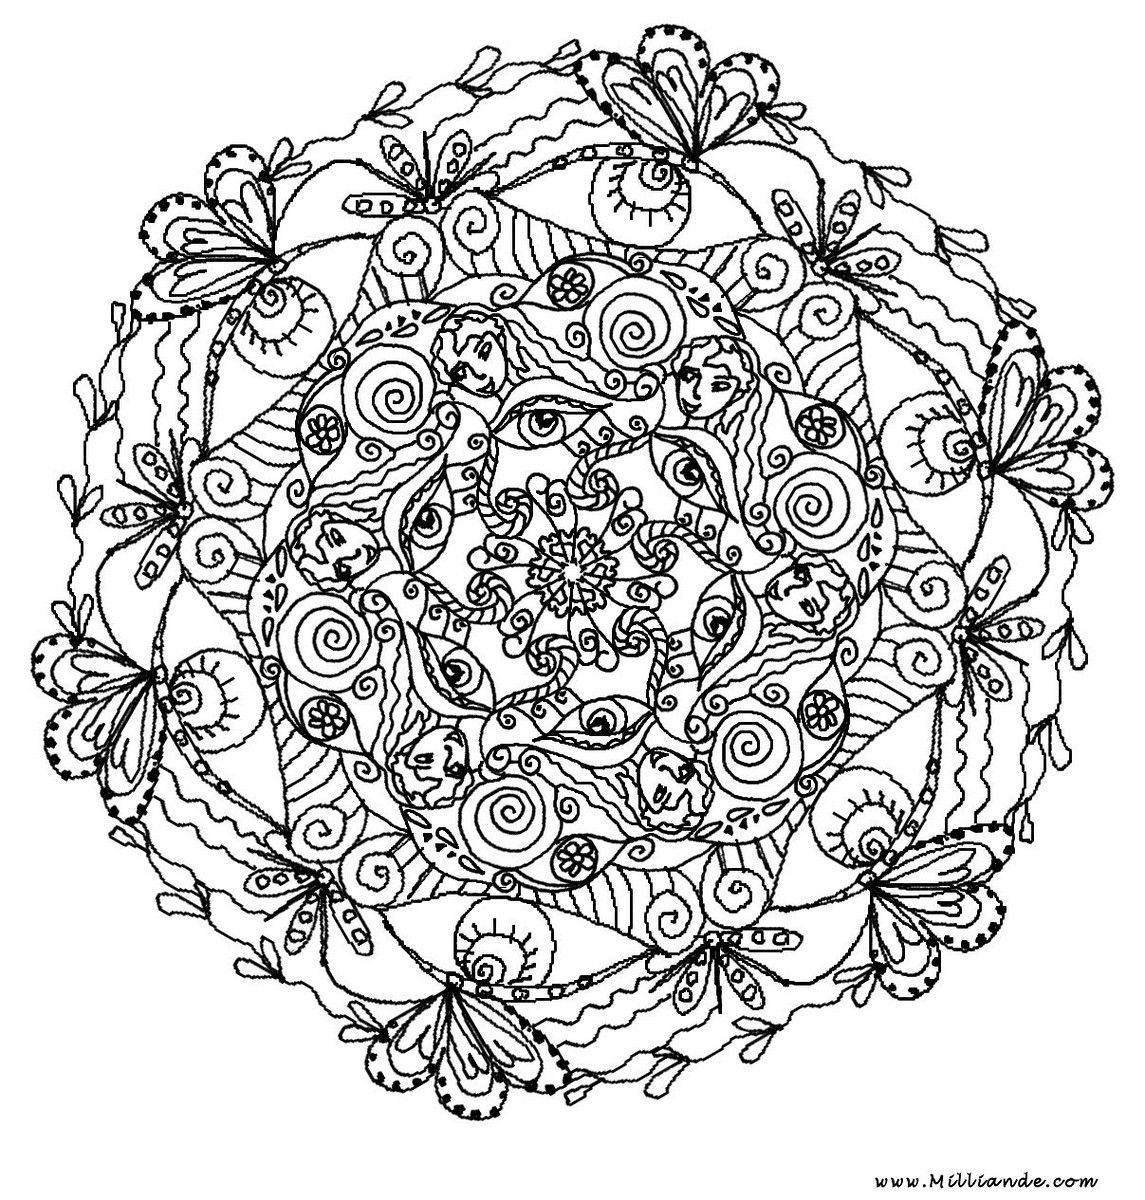 Downloadable butterfly coloring pages - Center Yourself With Mandalas Coloring Pages